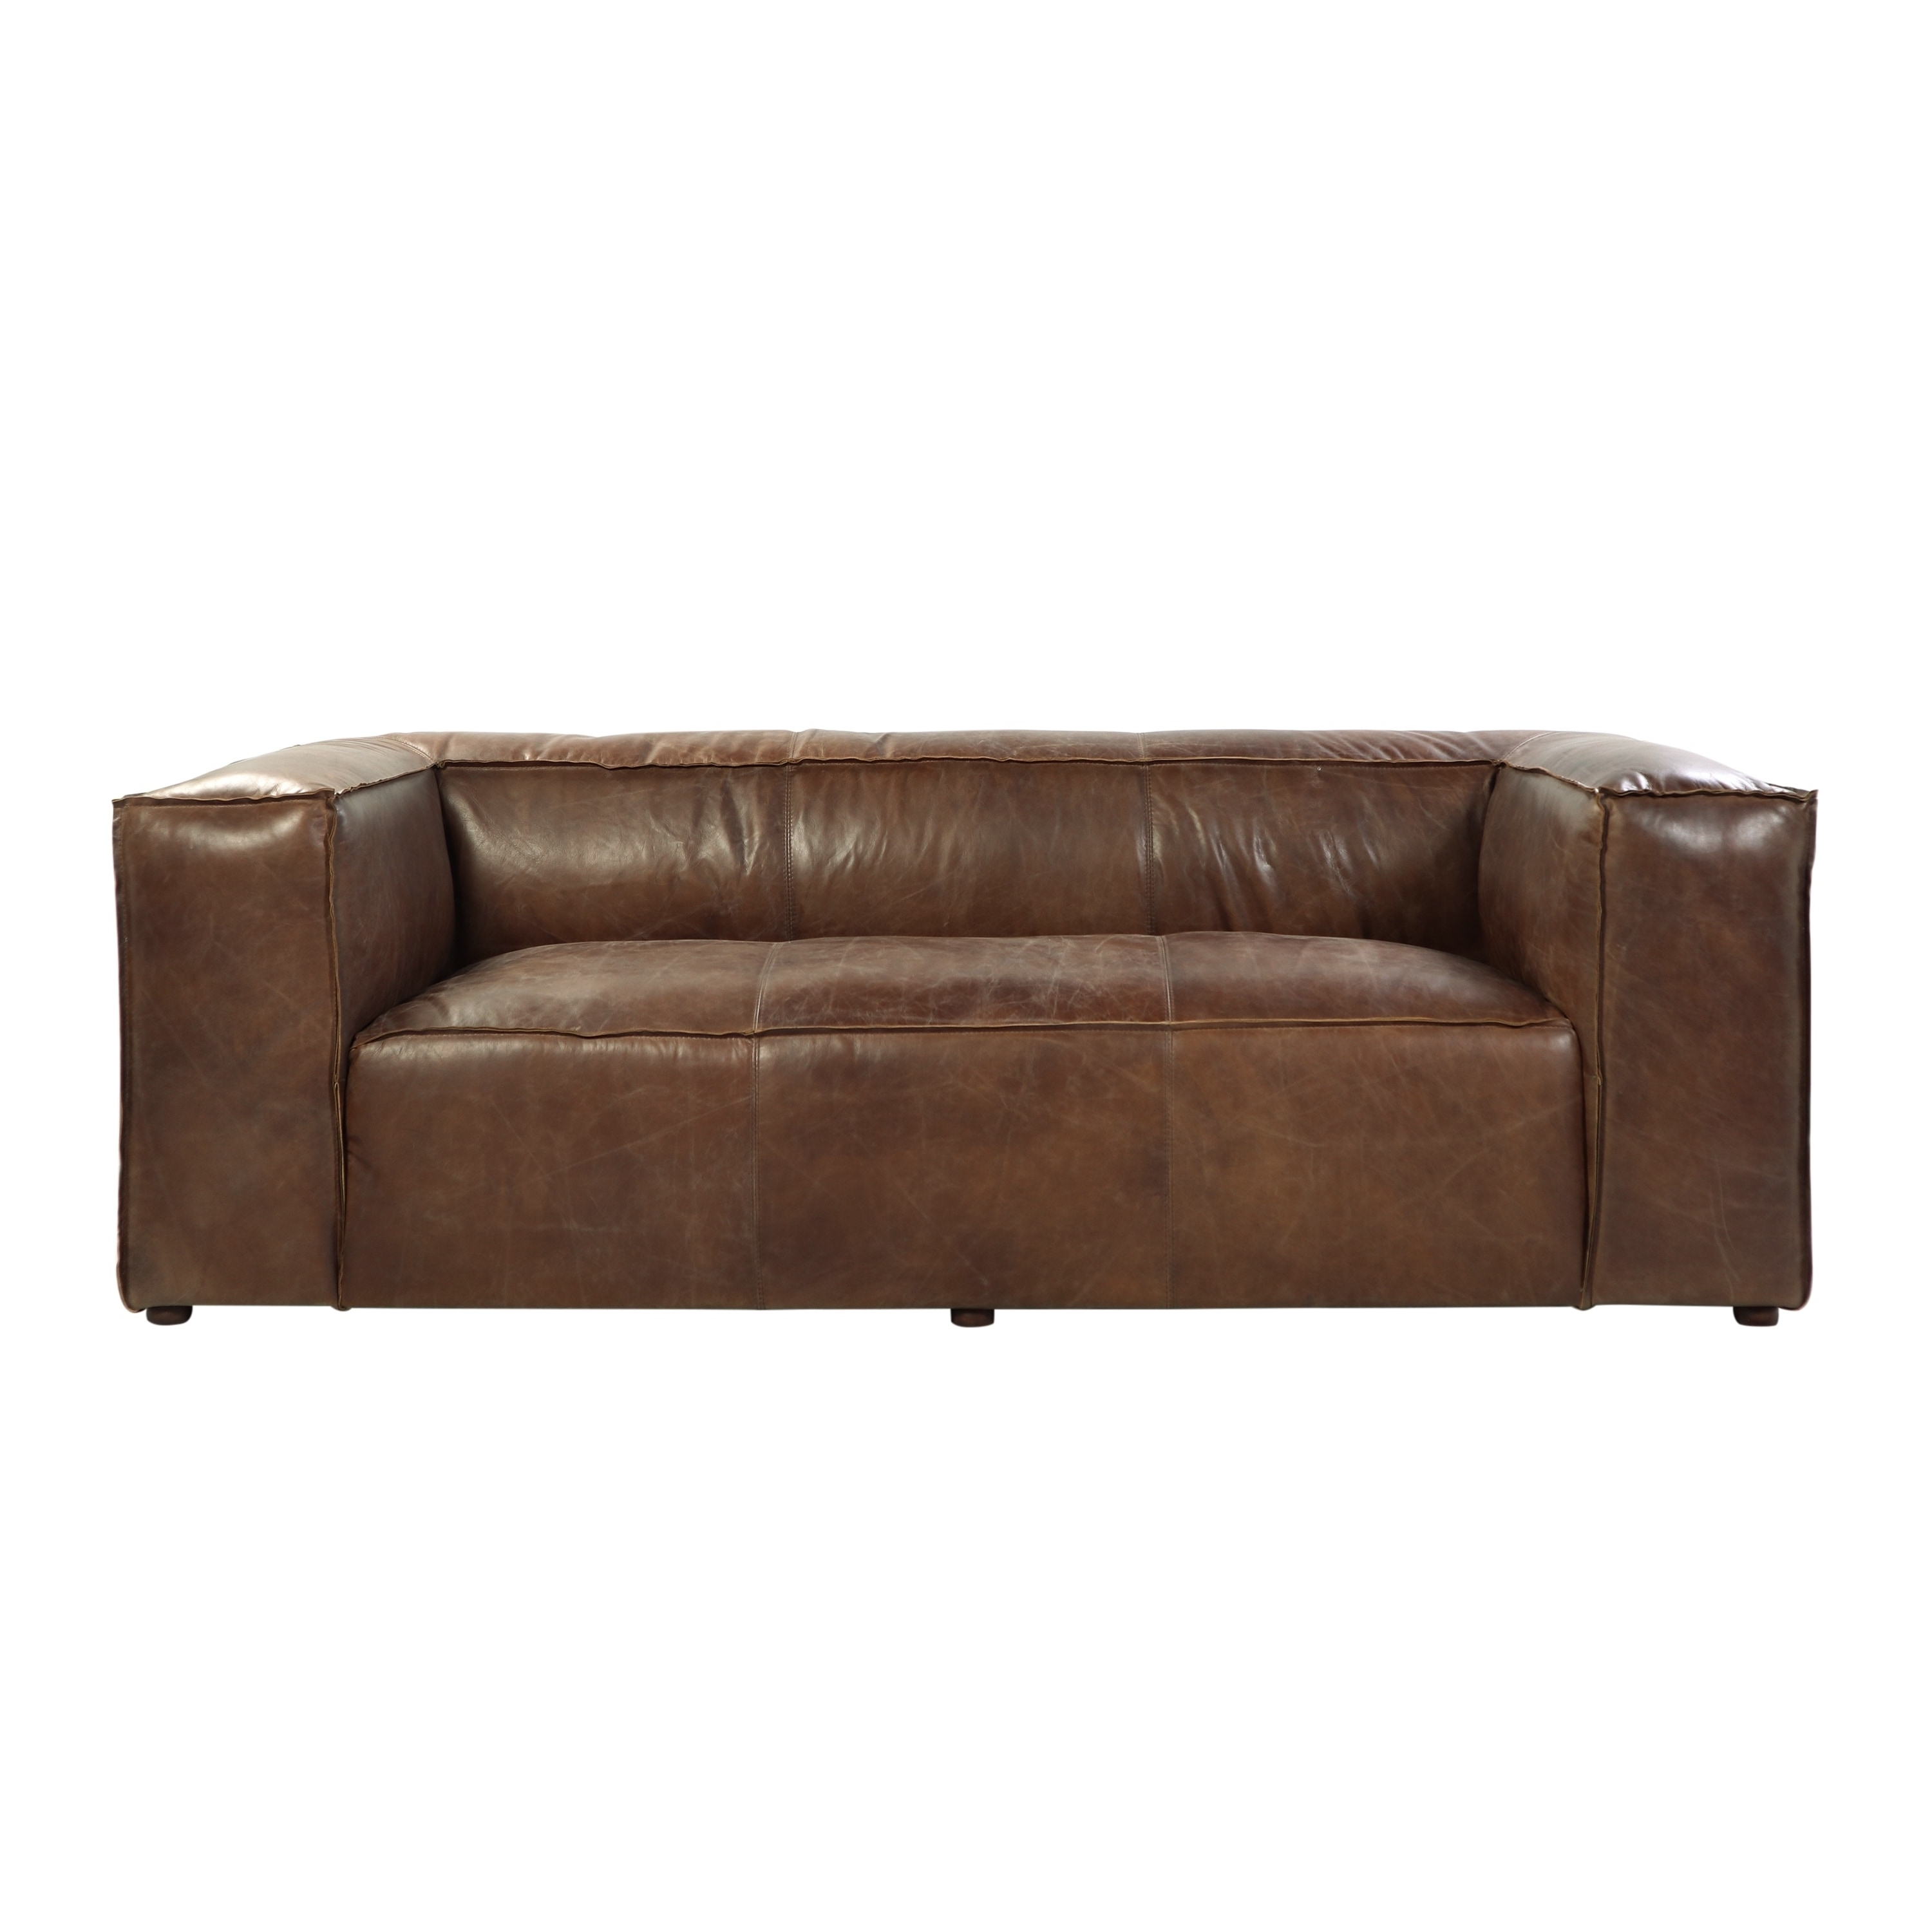 Well Liked Canterbury Leather Sofas Intended For Acme Furniture Brancaster Top Grain Leather Sofa, Retro Brown (View 11 of 20)